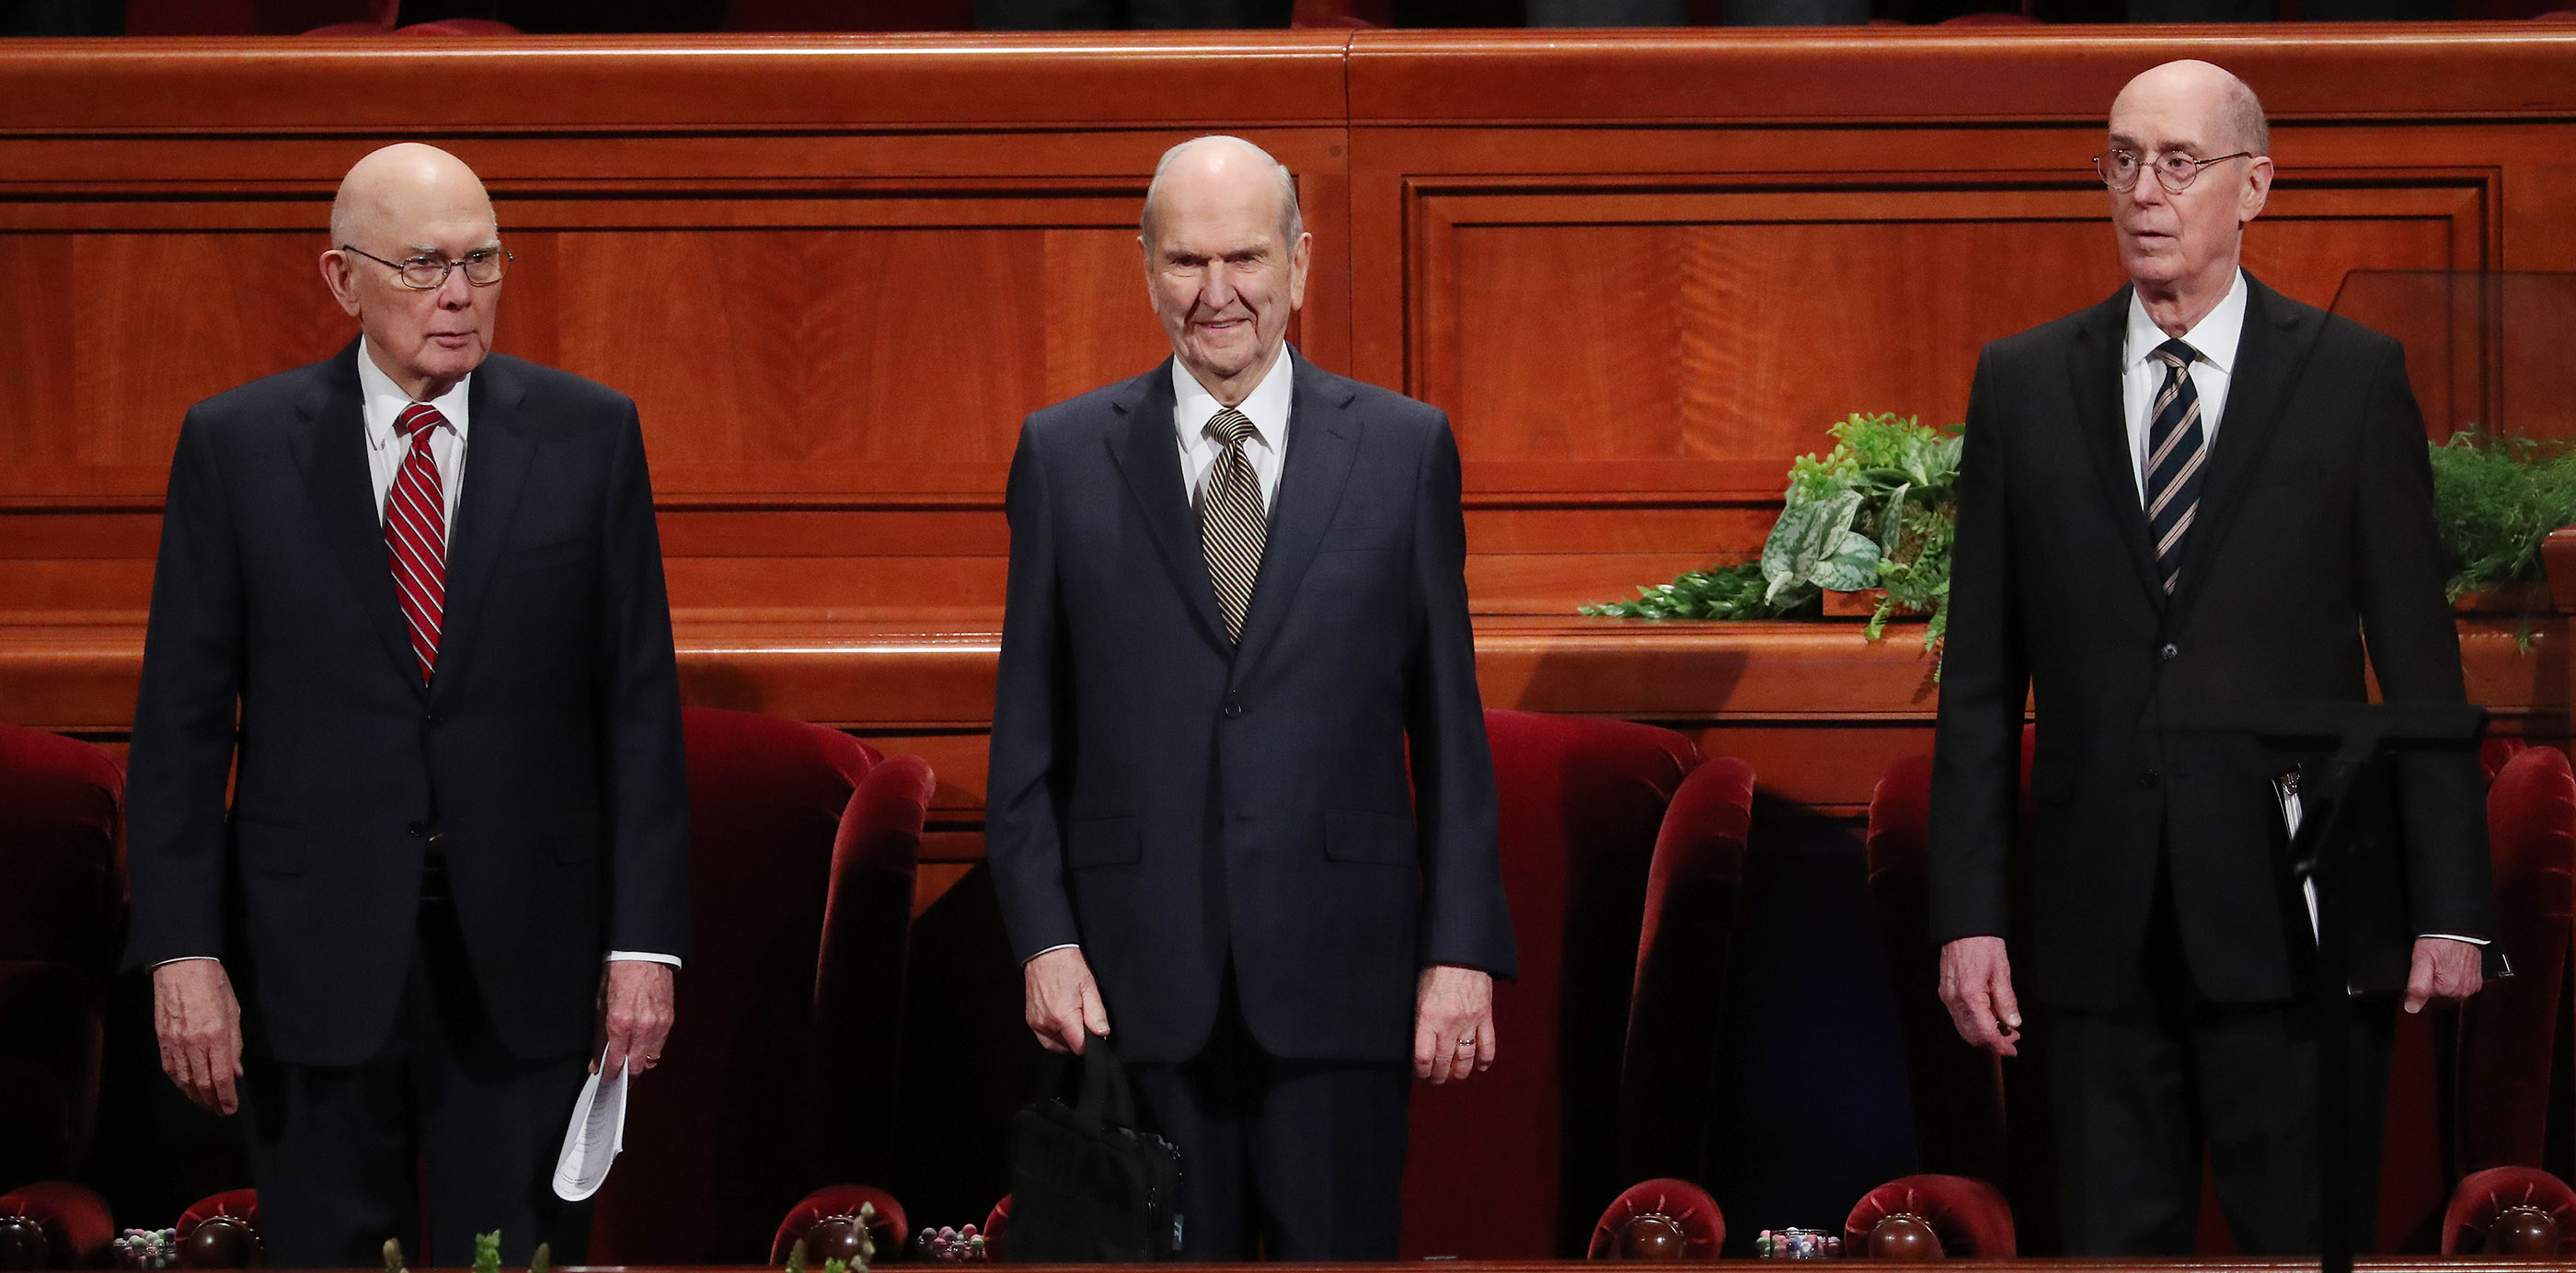 President Russell M. Nelson of The Church of Jesus Christ of Latter-day Saints, center, and his counselors, President Dallin H. Oaks, first counselor in the First Presidency, left, and President Henry B. Eyring, second counselor in the First Presidency, right, stand in the Conference Center prior to the 189th Annual General Conference of The Church of Jesus Christ of Latter-day Saints in Salt Lake City on Sunday, April 7, 2019.